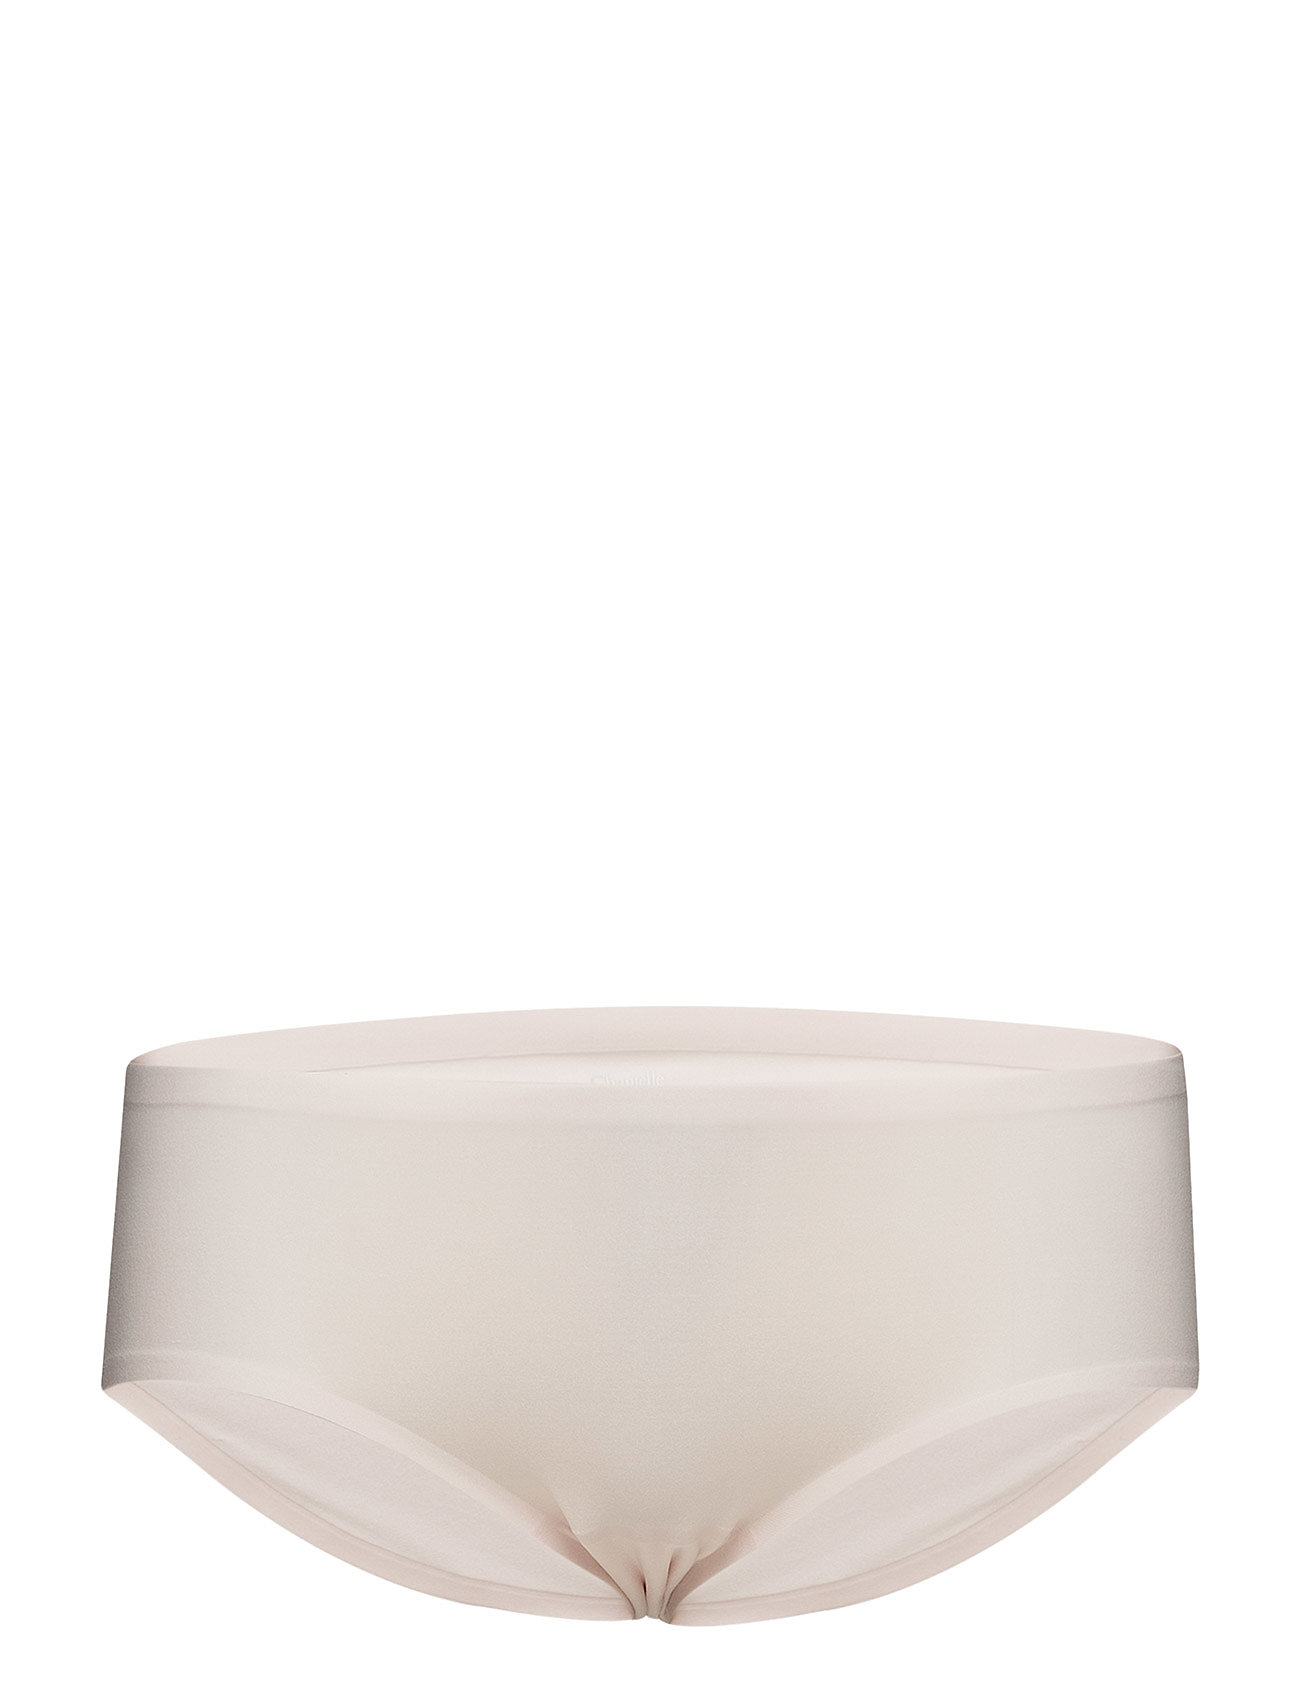 CHANTELLE SOFT STRECH BOXER SHORT - POWDER PINK